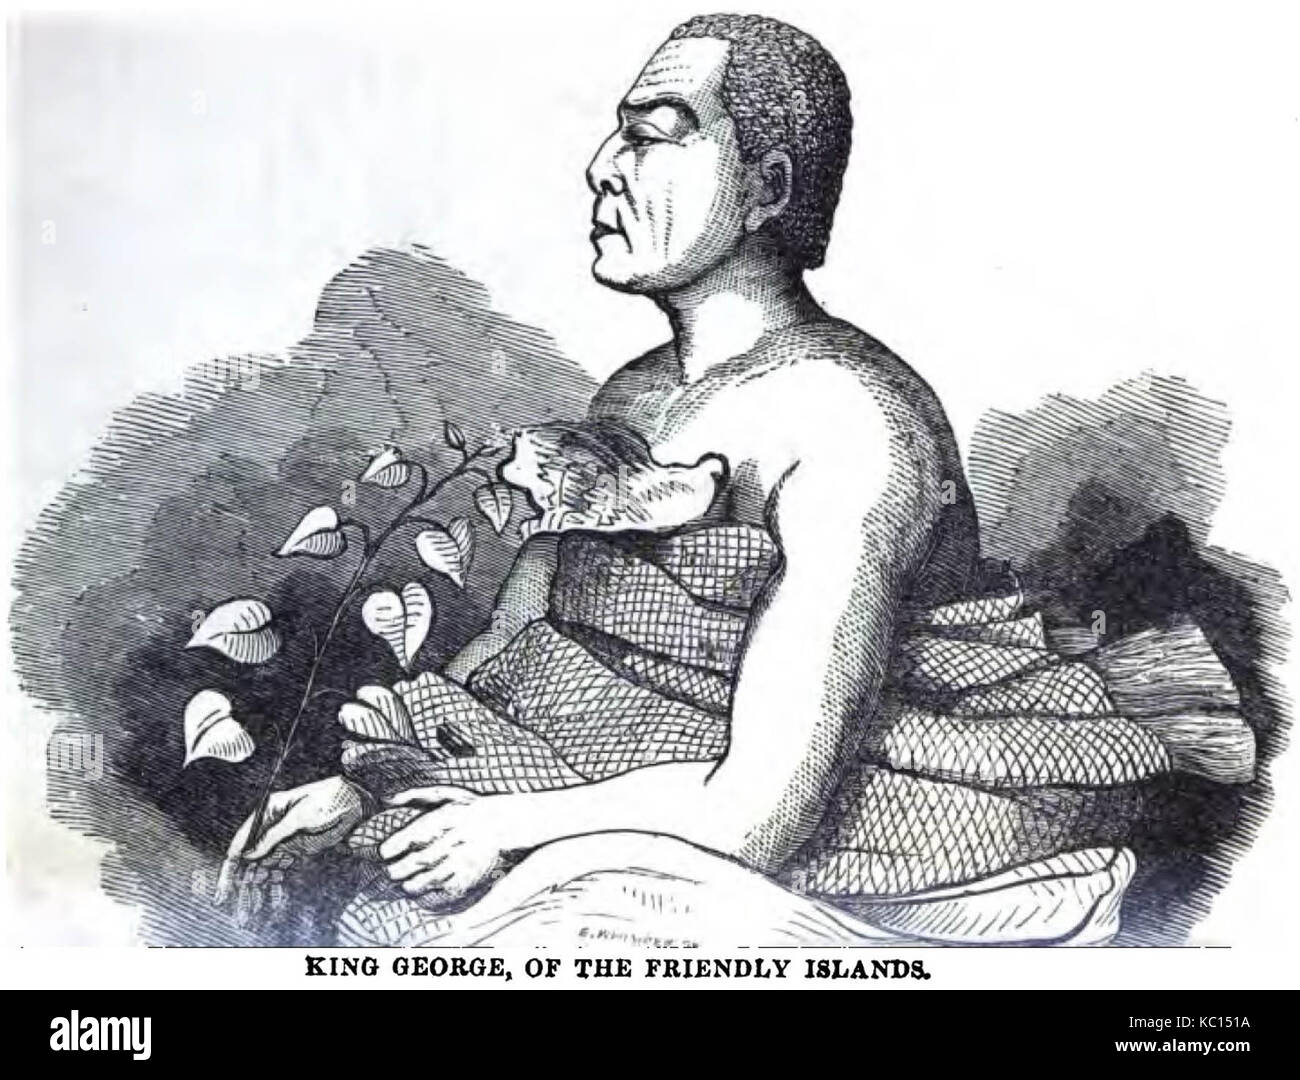 King George, of the Friendly Islands (1852) - Stock Image